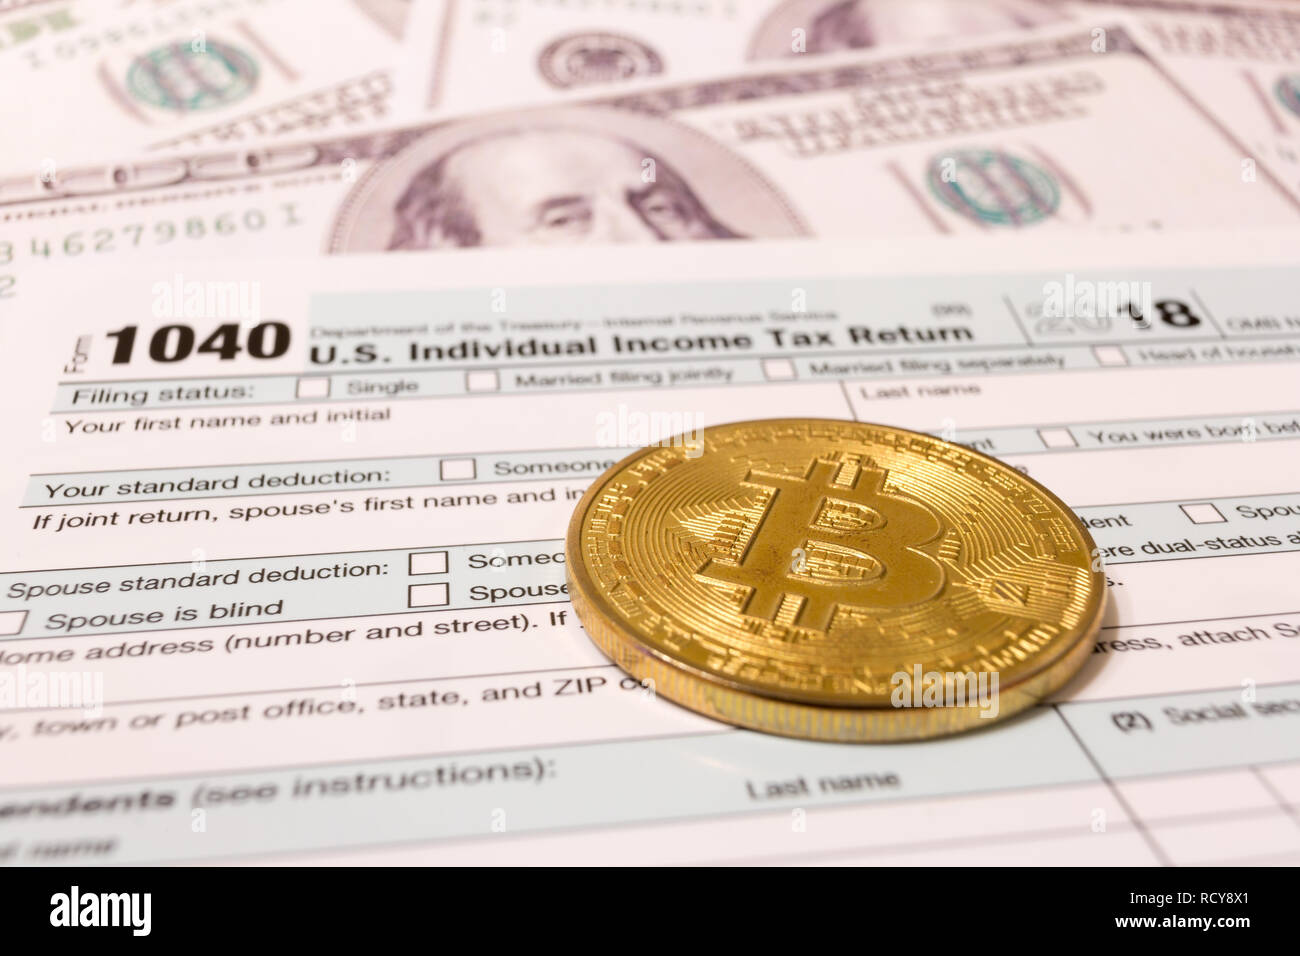 Bitcoin and 2019 calendar with 1040 income tax form for 2018